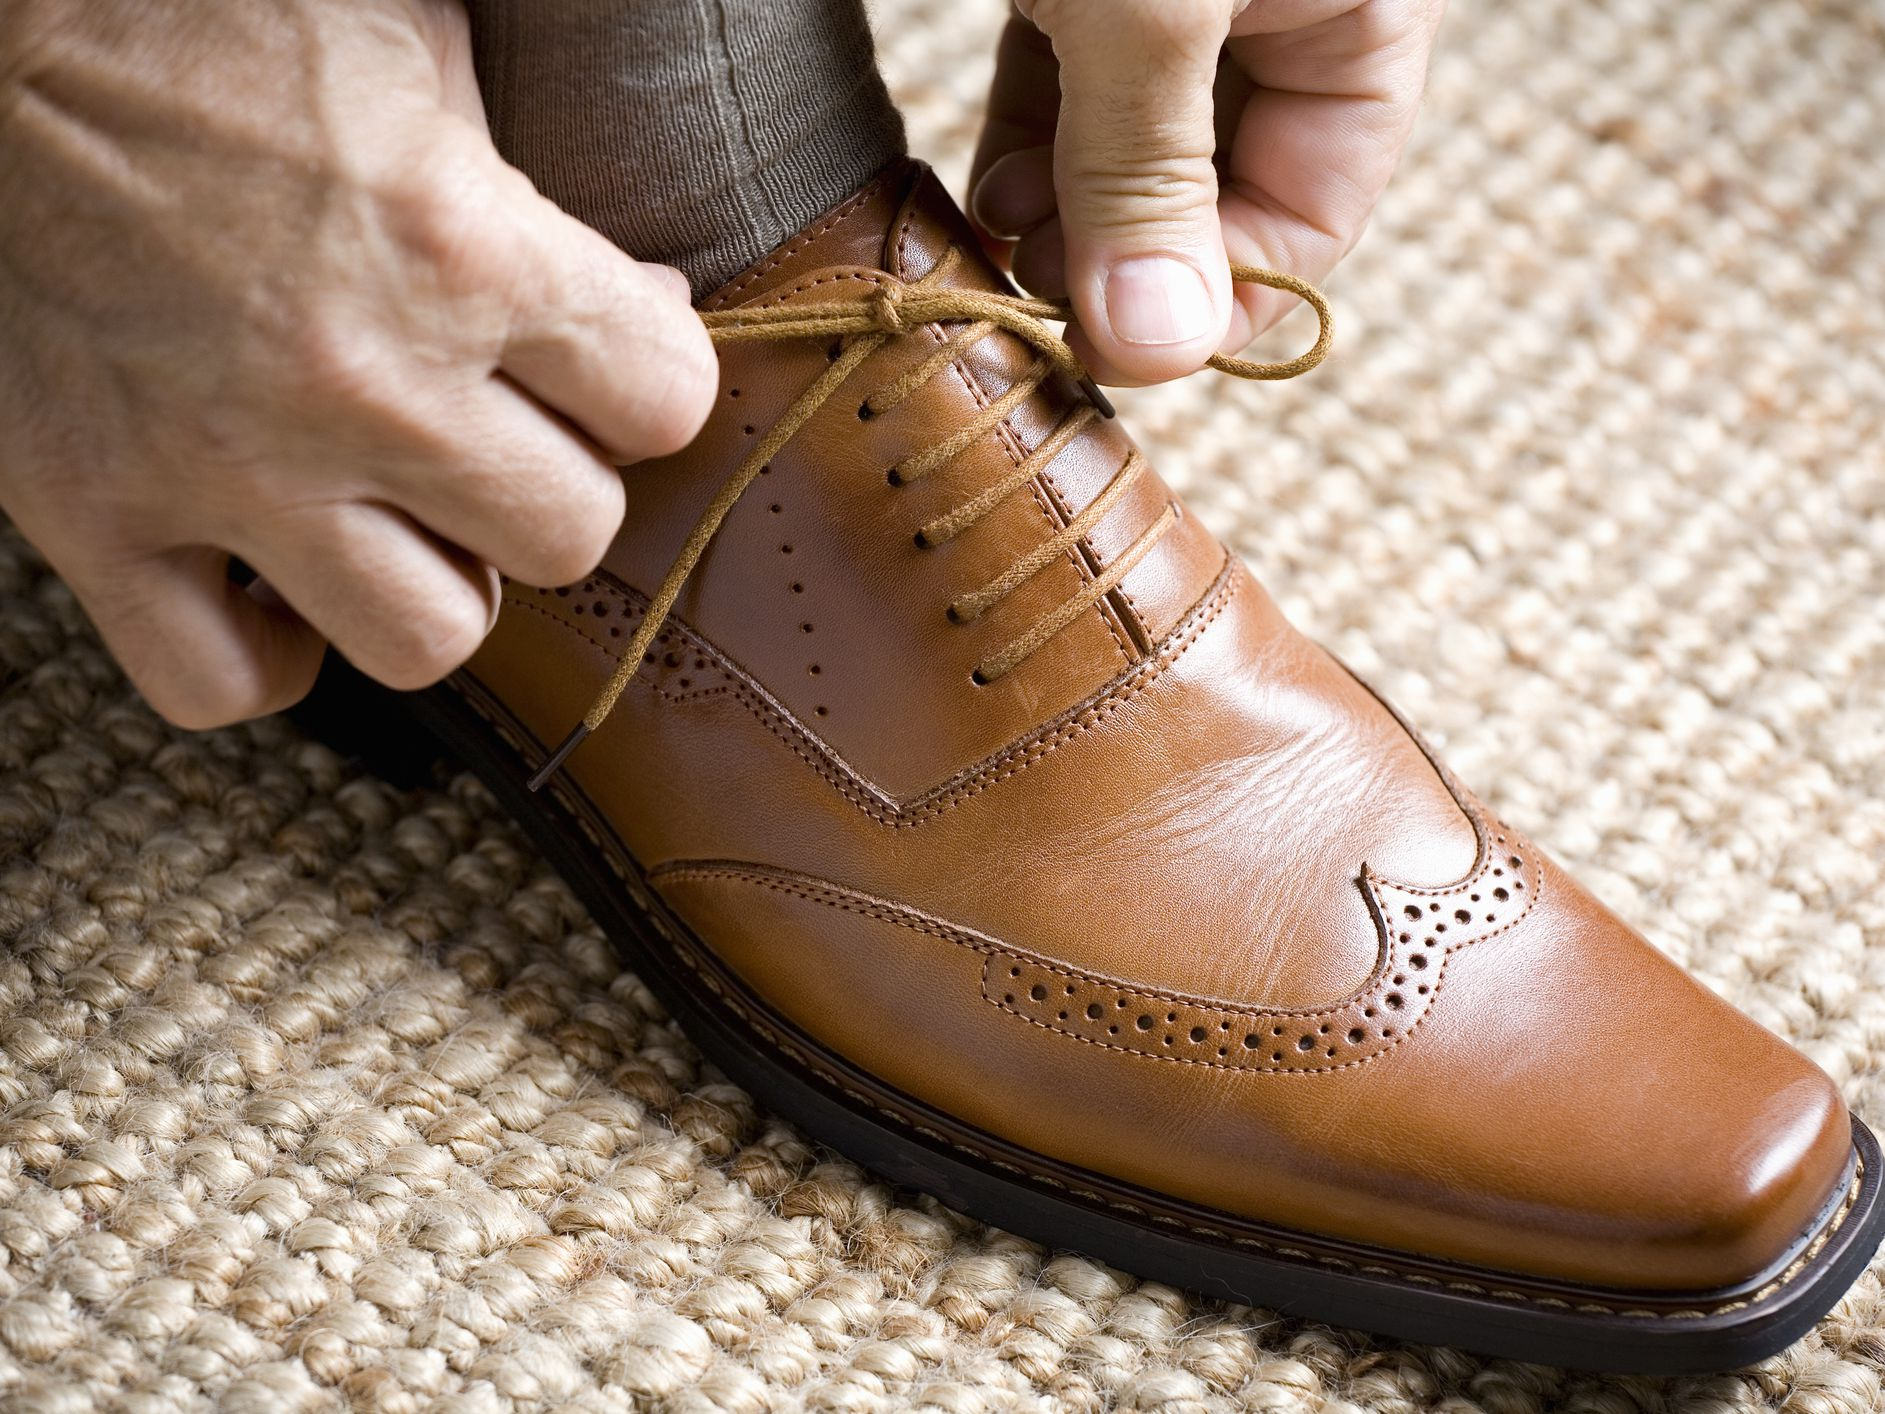 Men's Casual Shoes Spring Leather One-legged Versatile Mens Shoes Wide Varieties